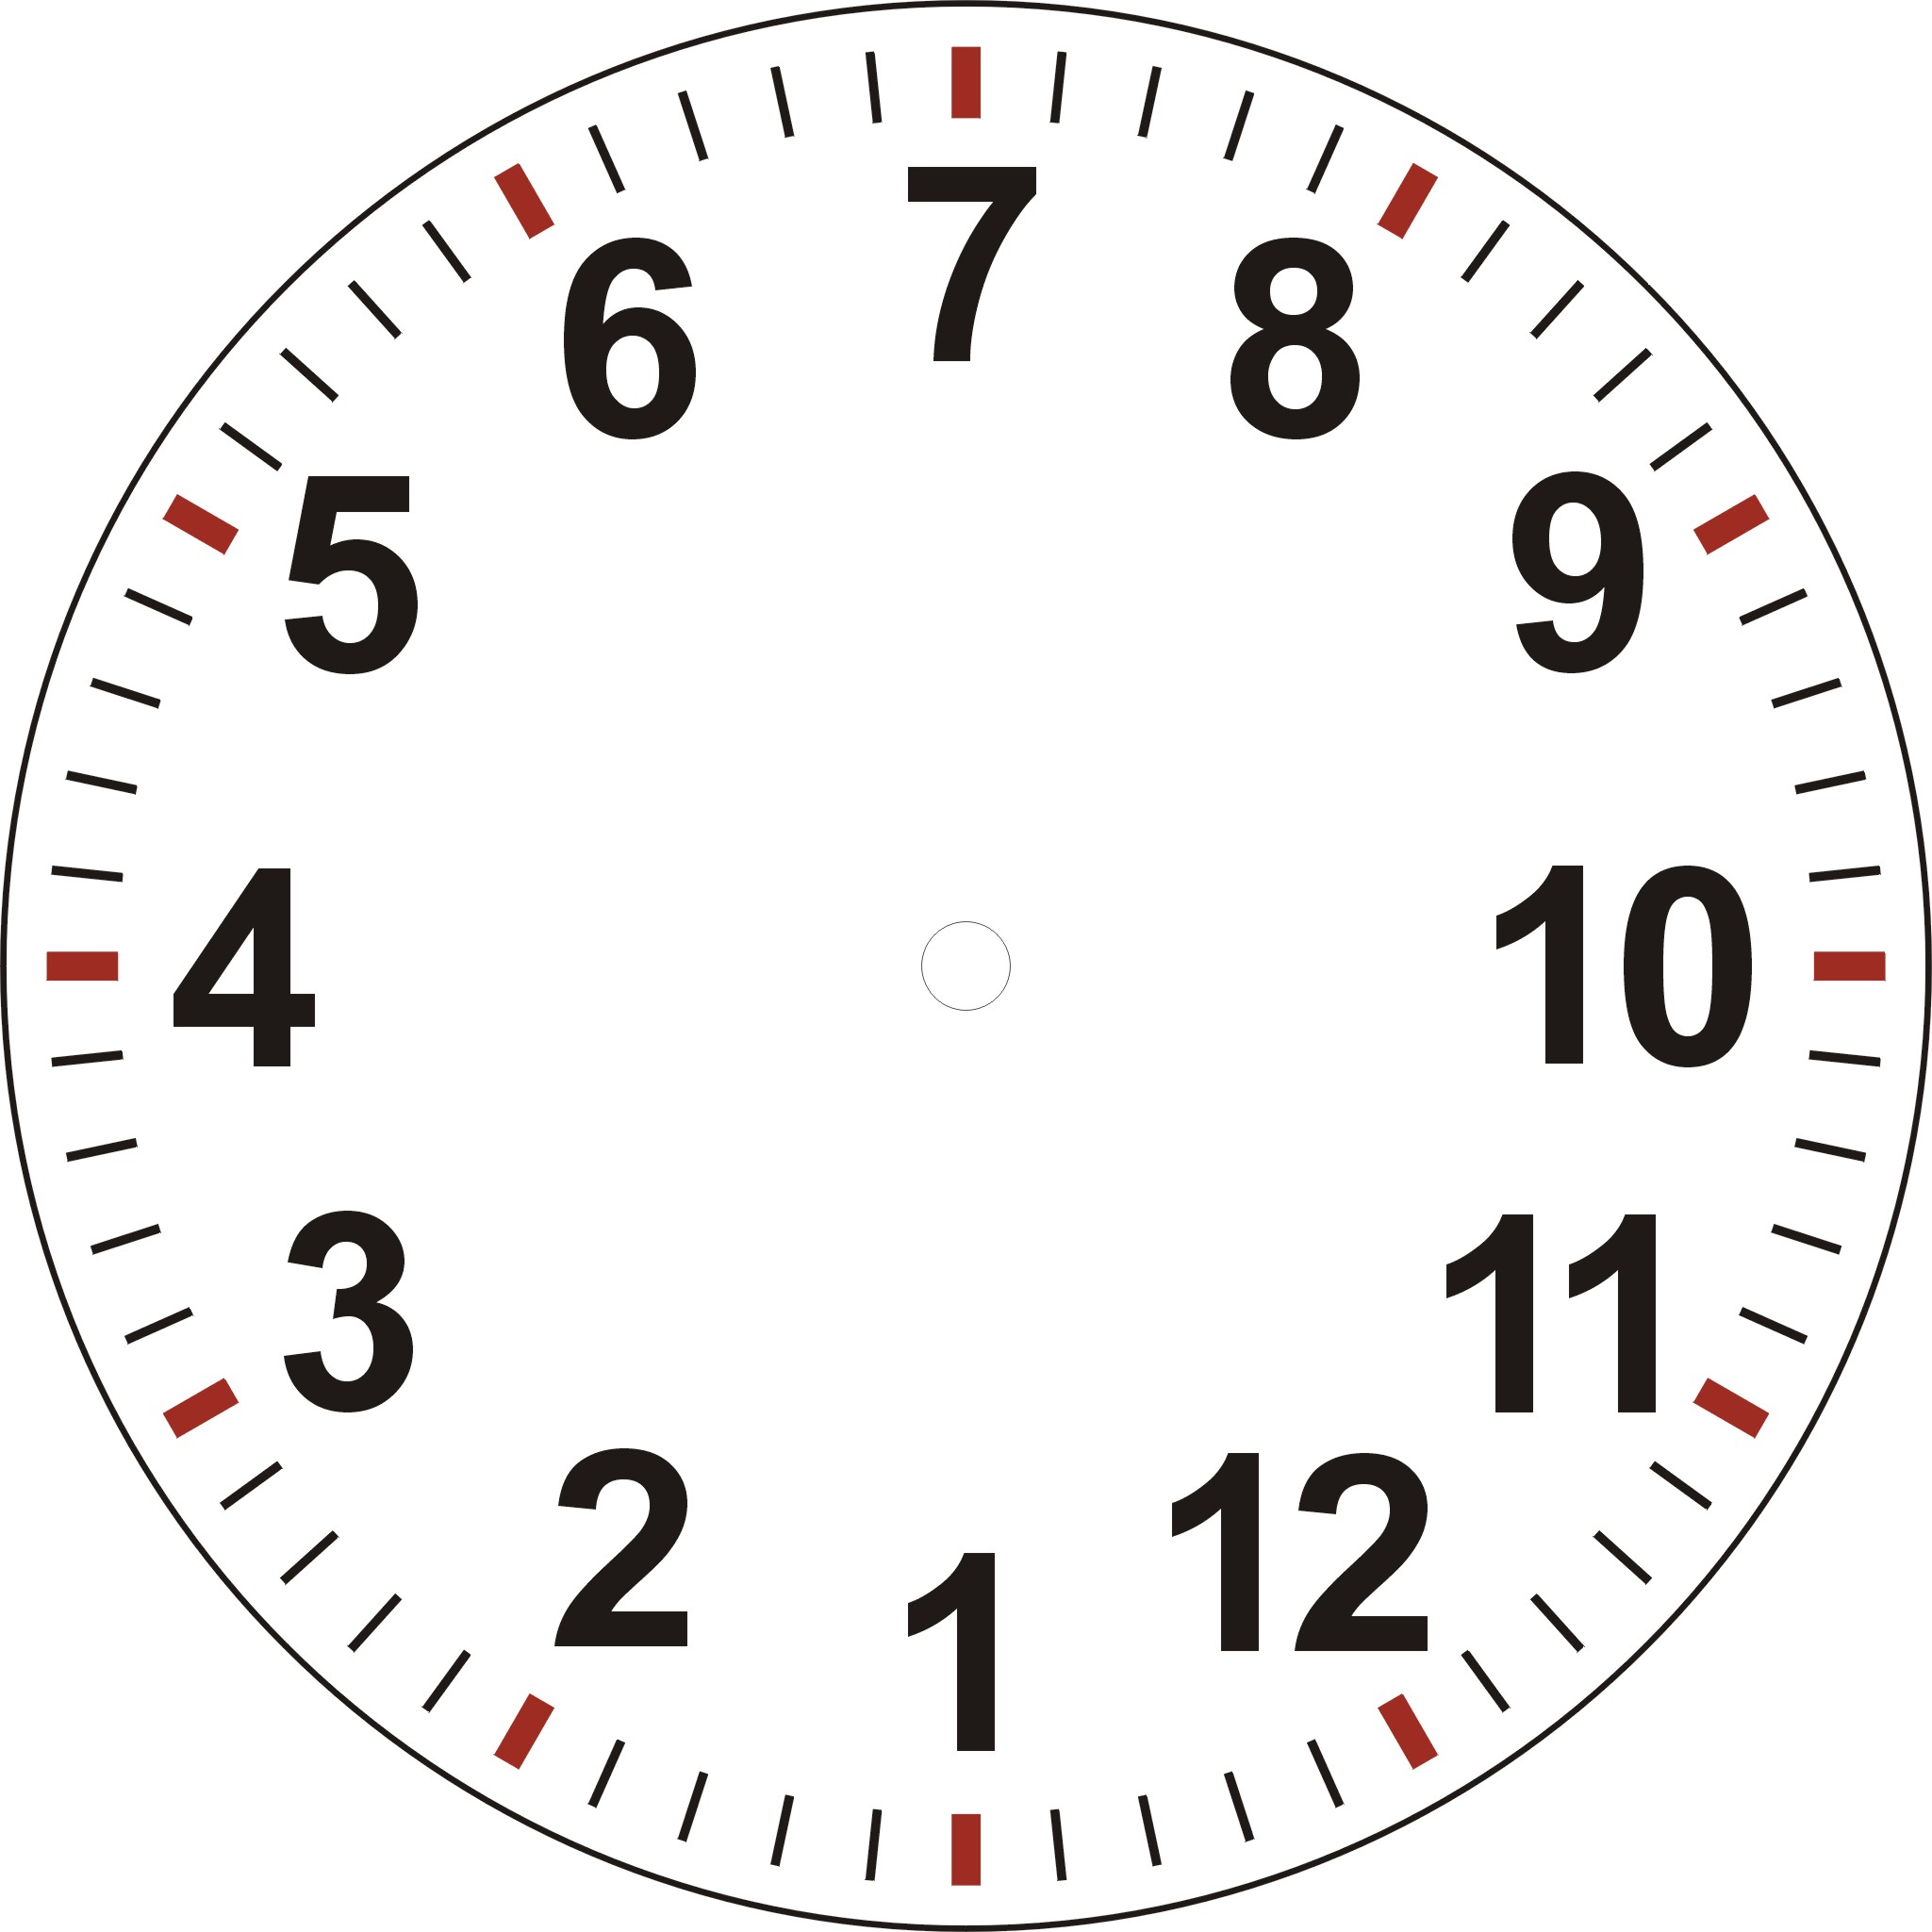 worksheet Clock Face Template make your own clock faces educational innovations face